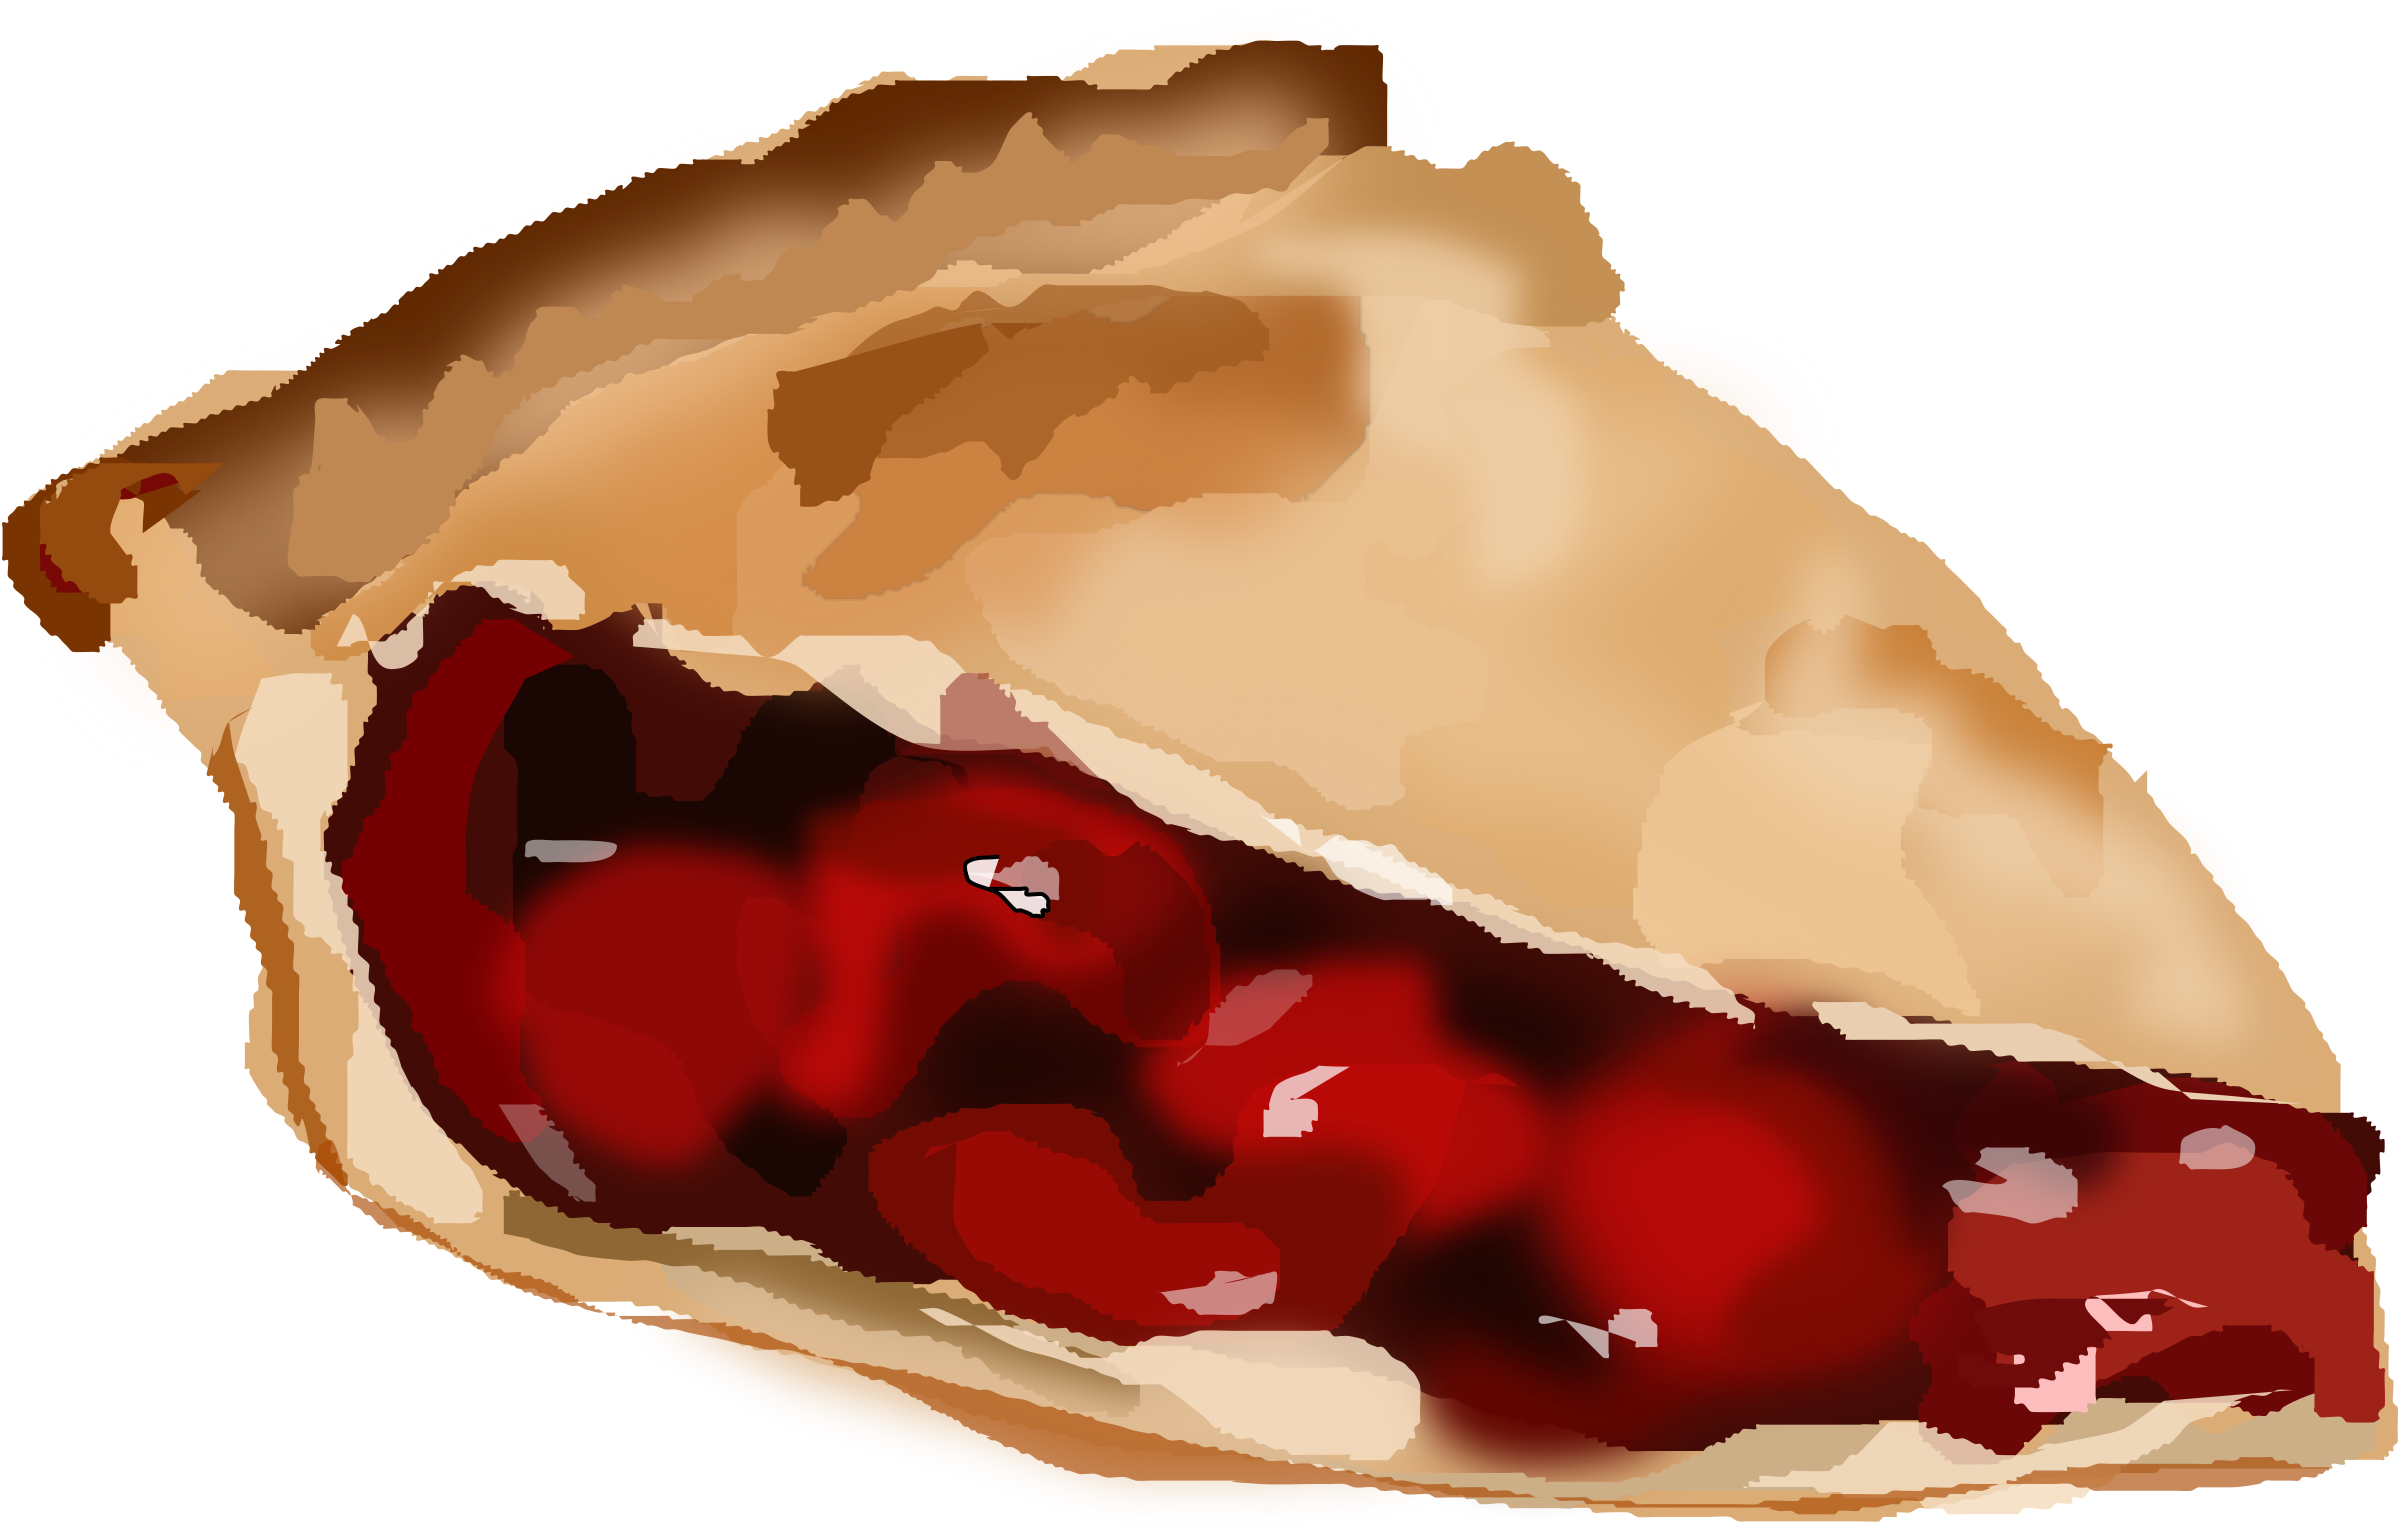 Pi drawing cherry pie. Clipart slice of illustration